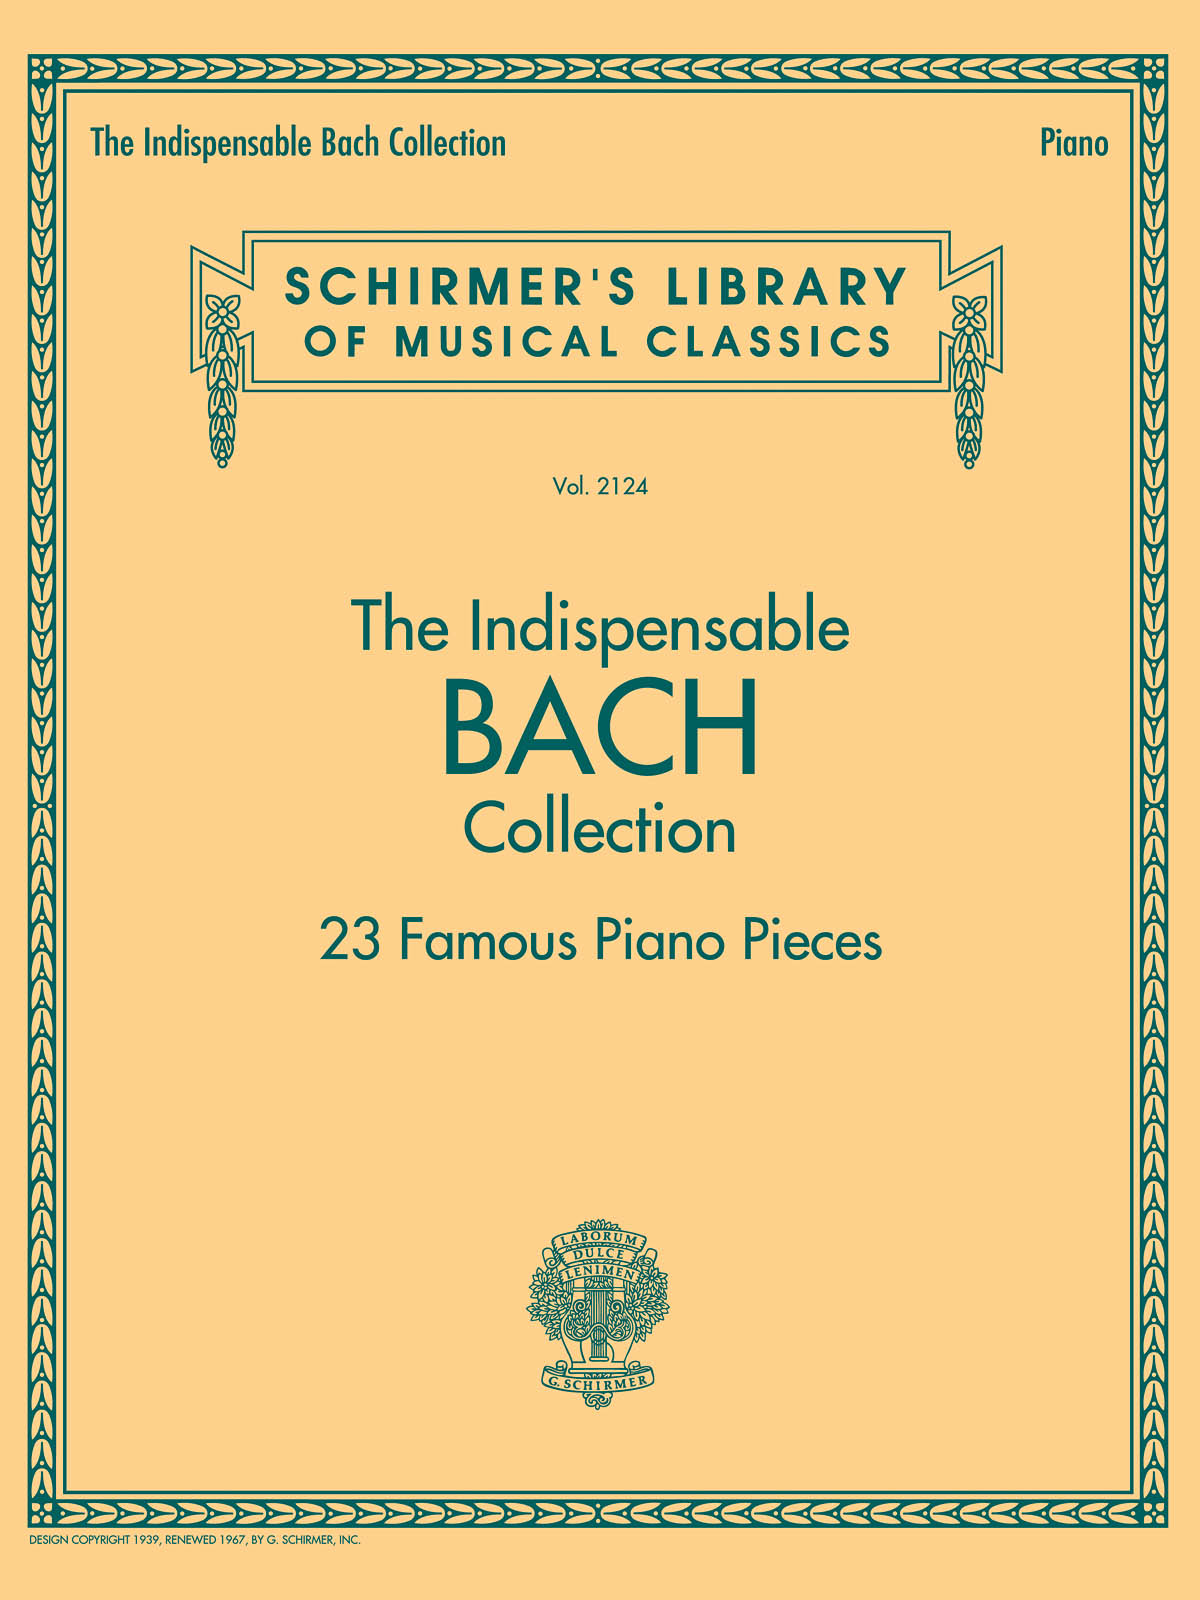 The Indispensable Bach Collection - 23 Famous Piano Pieces (Schirmer's Library of Musical Classics)